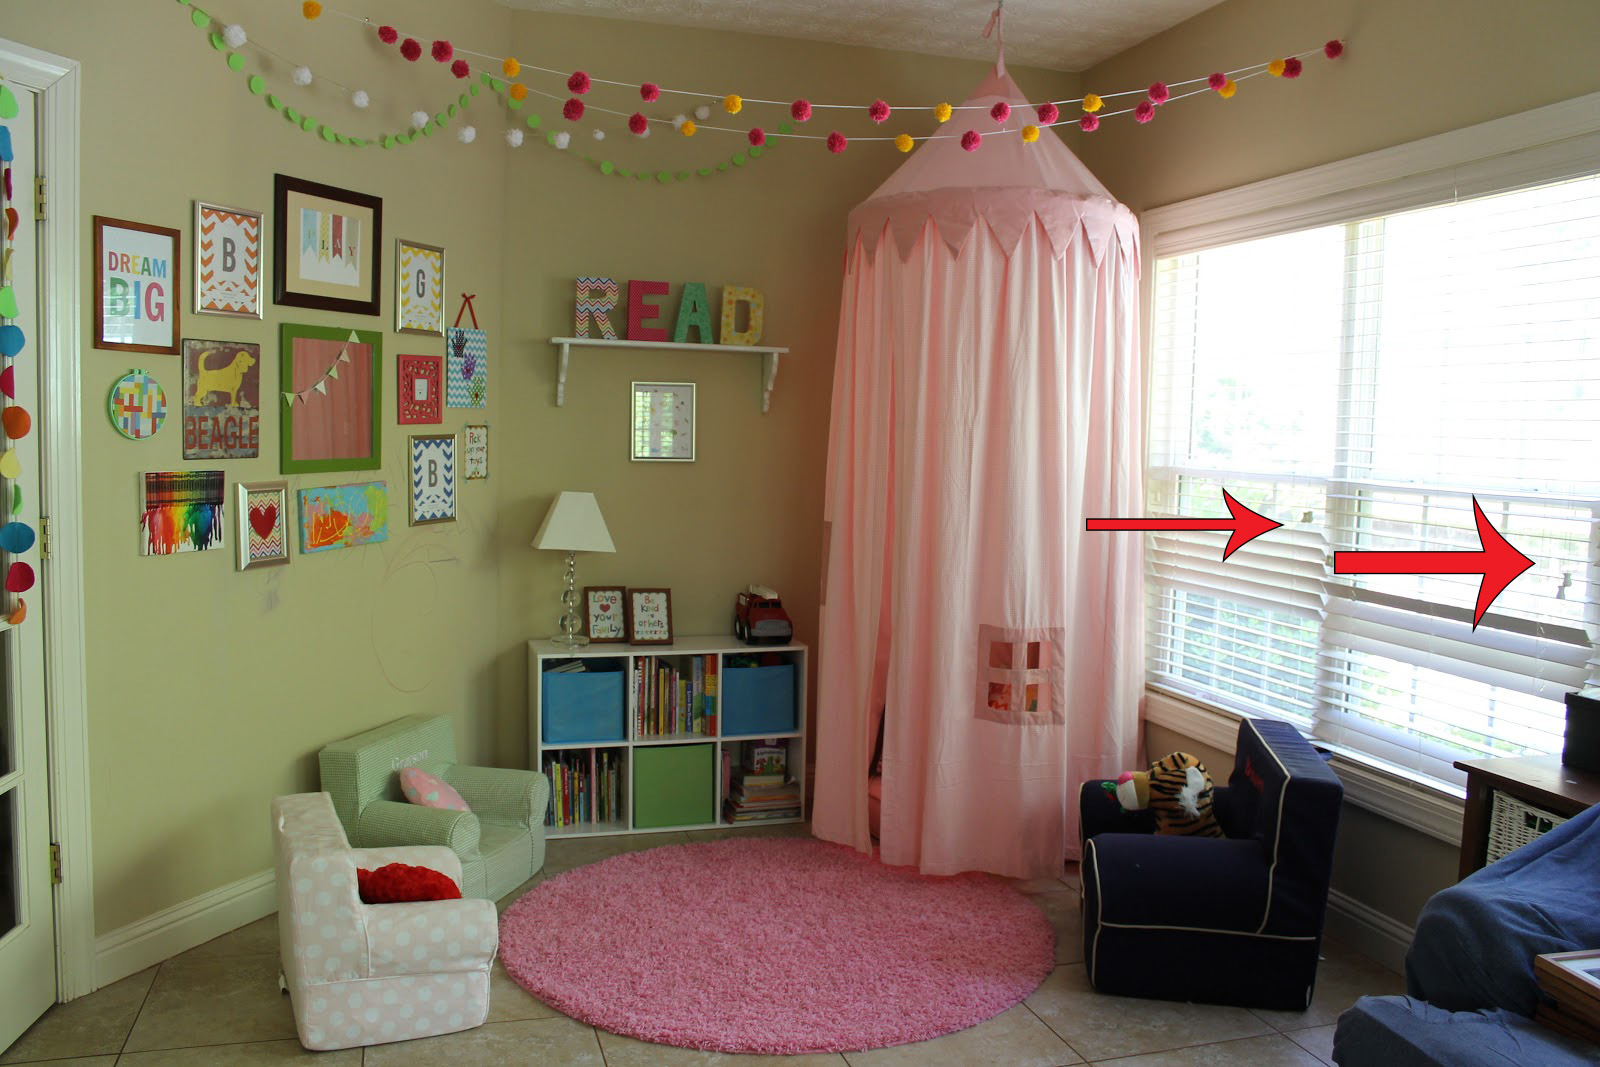 2013 Deadly Nursery Toddler And Play Room Designs Pfwbs